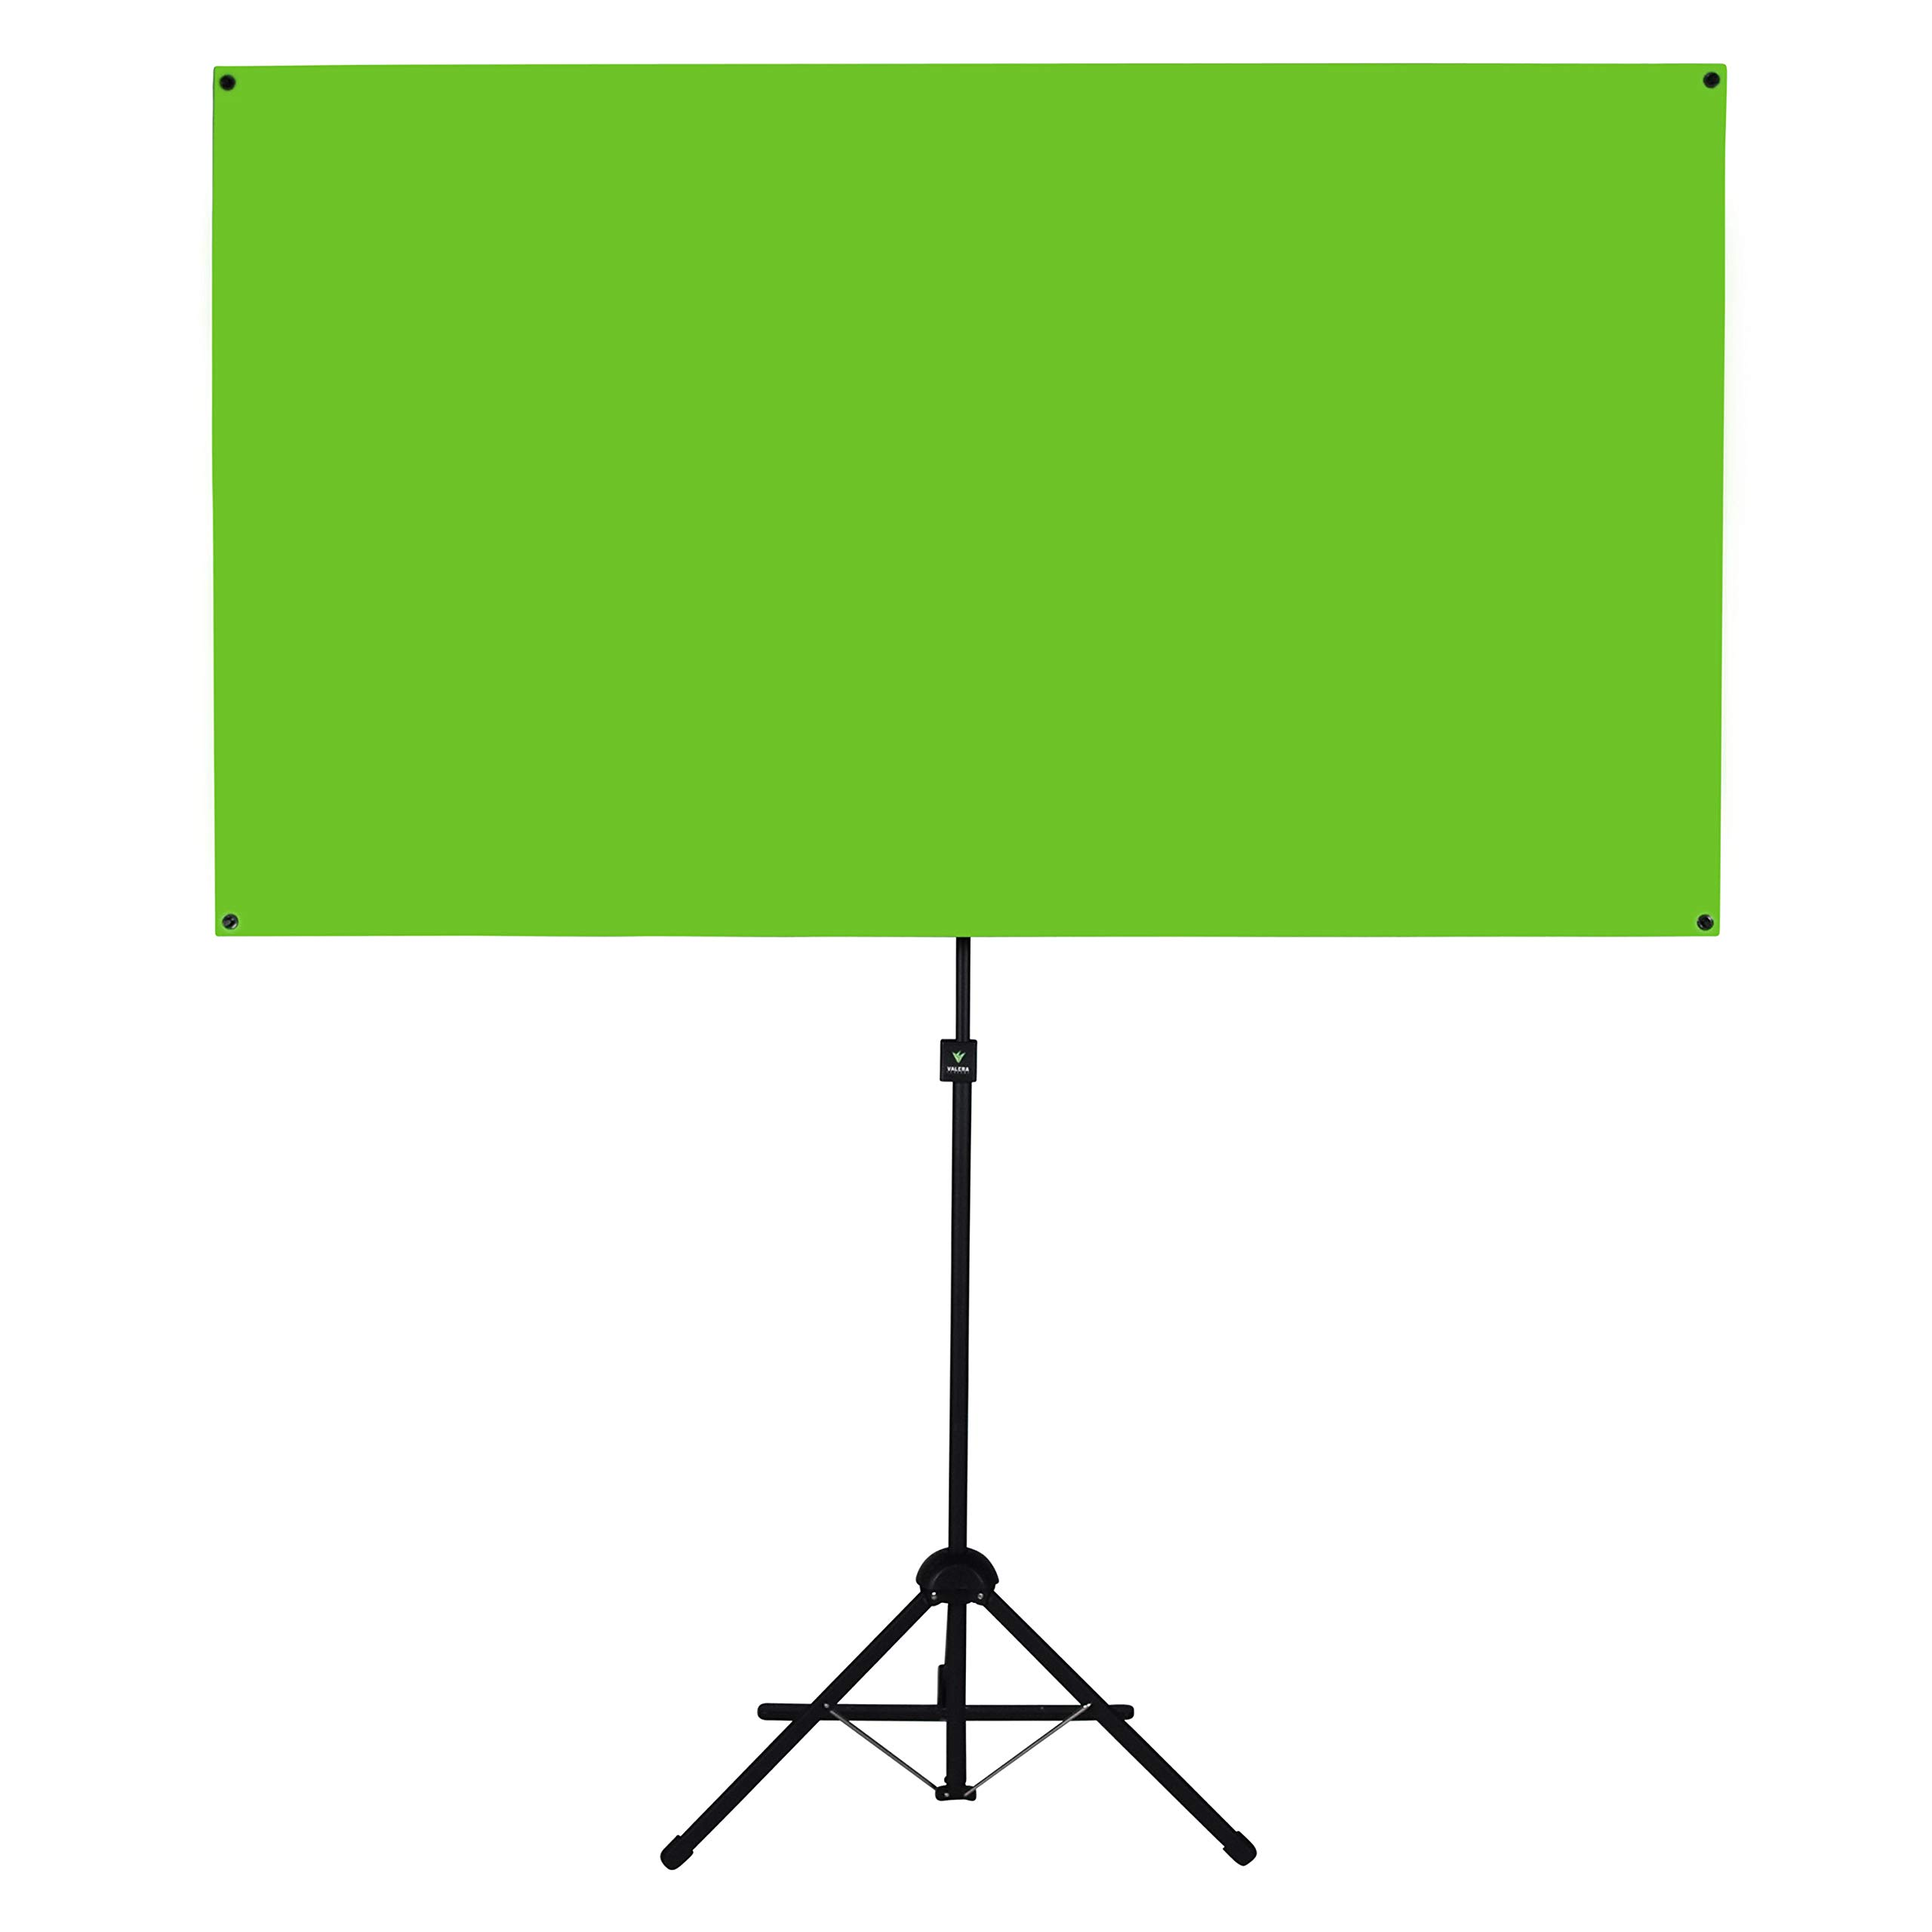 Valera Explorer 70 Inch Portable Green Screen for Streaming and Videos - Mounts on Tripod and Wall | Only 8 lbs | 2 min Setup | 16:9 Format | ChromaBoost Fabric with High Vibrancy for Low Lighting by On the Go Screens